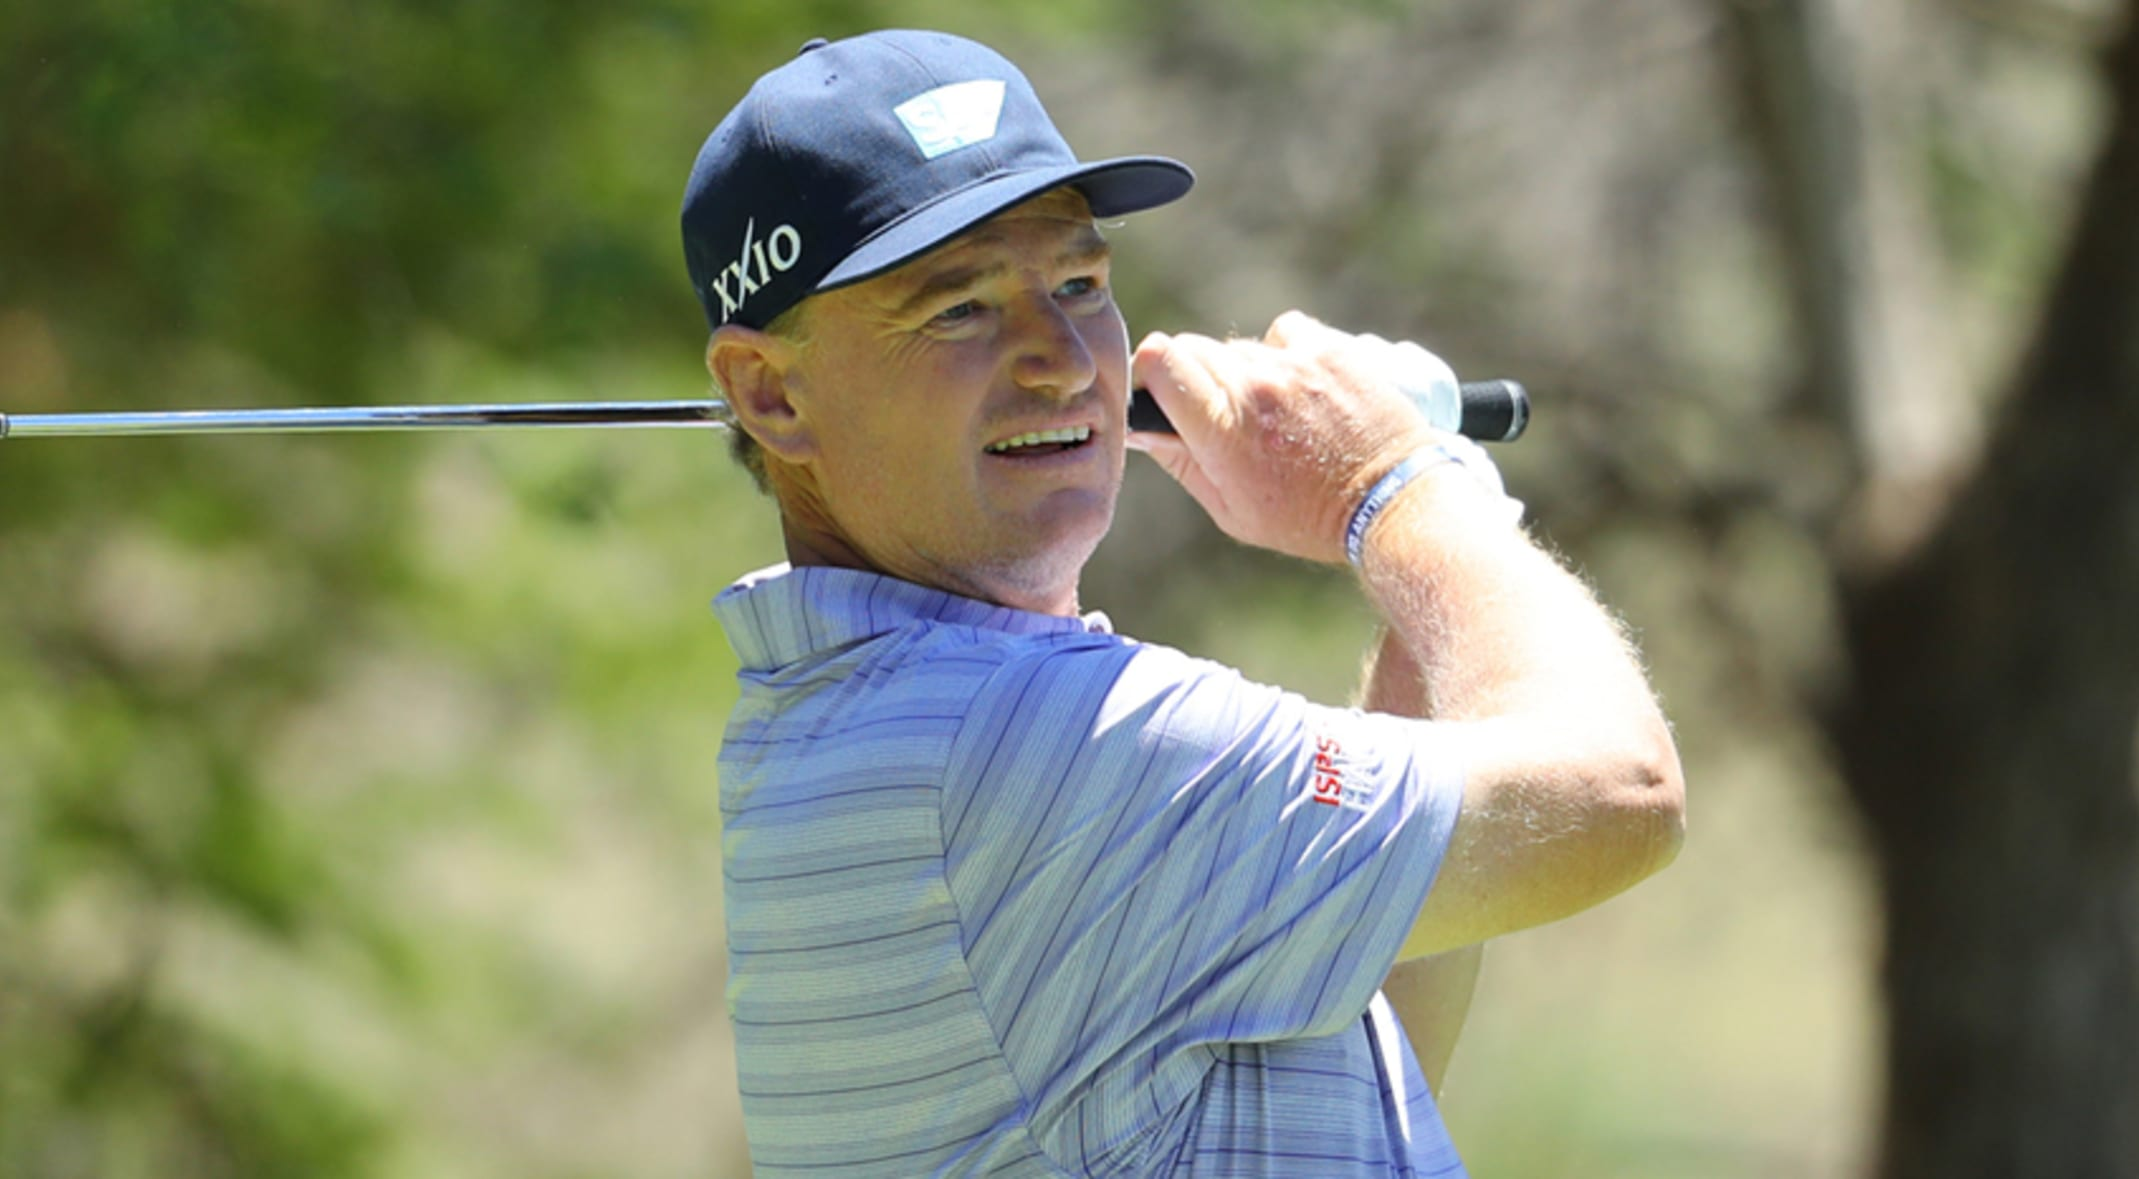 Ernie Els ready to focus full attention on PGA TOUR Champions